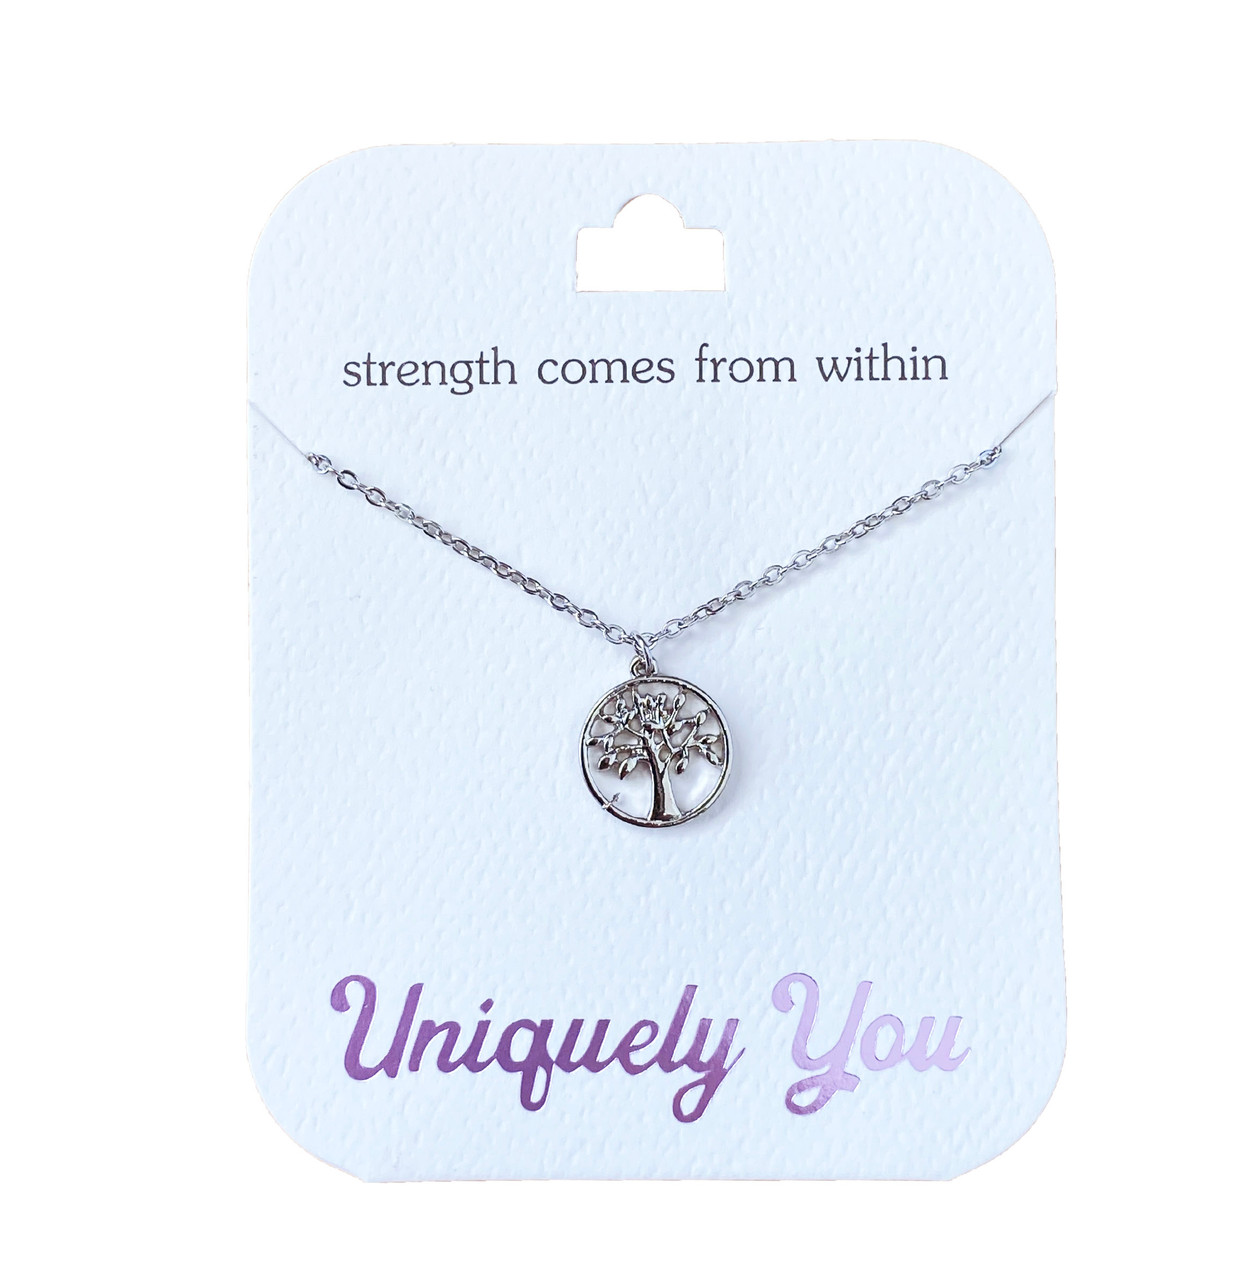 YOU4016 Uniquely You Pendant, Strength within